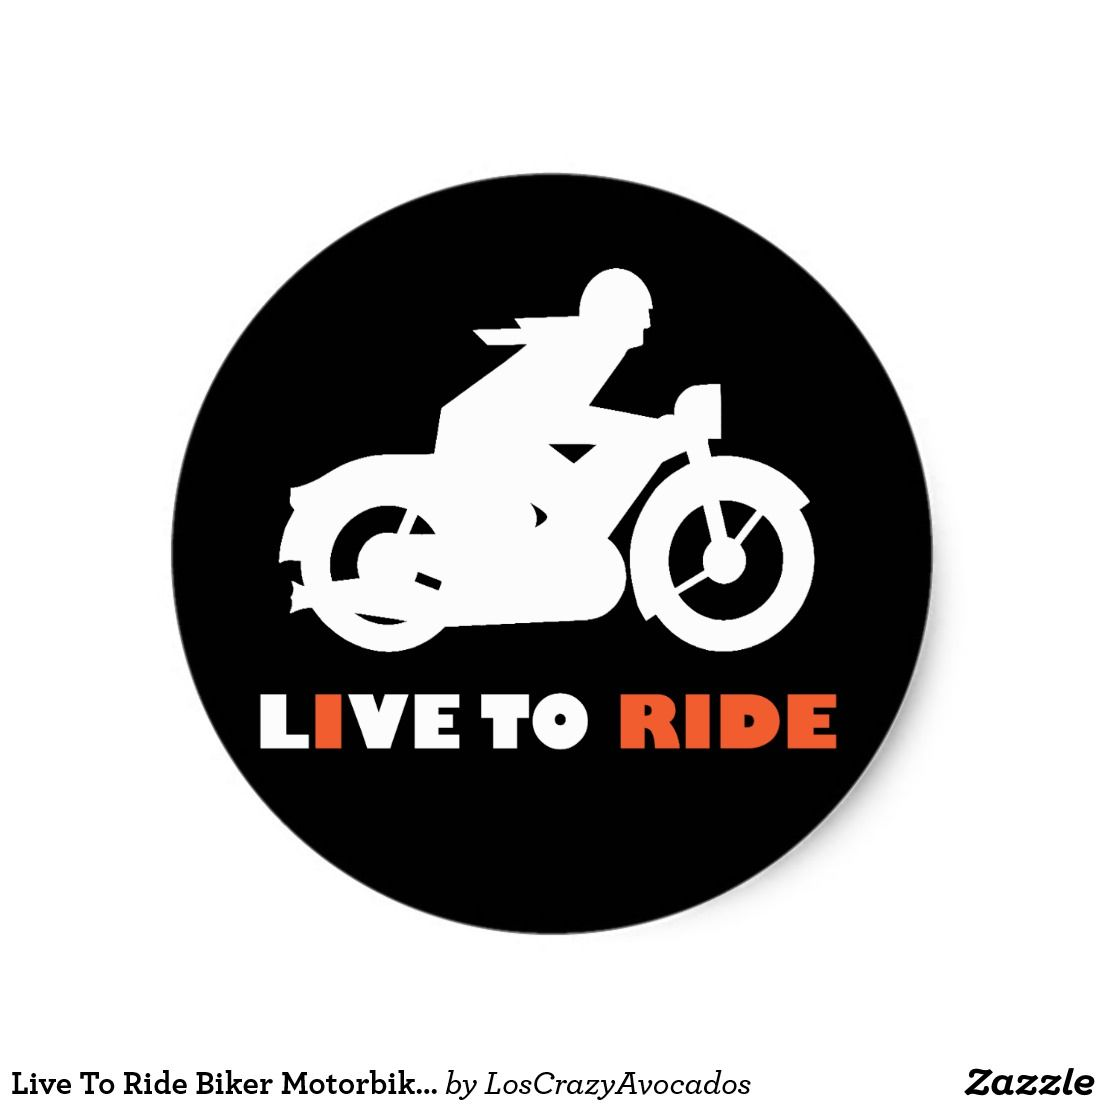 Live To Ride Biker Motorbike Motorcycle Sticker Motorcycle